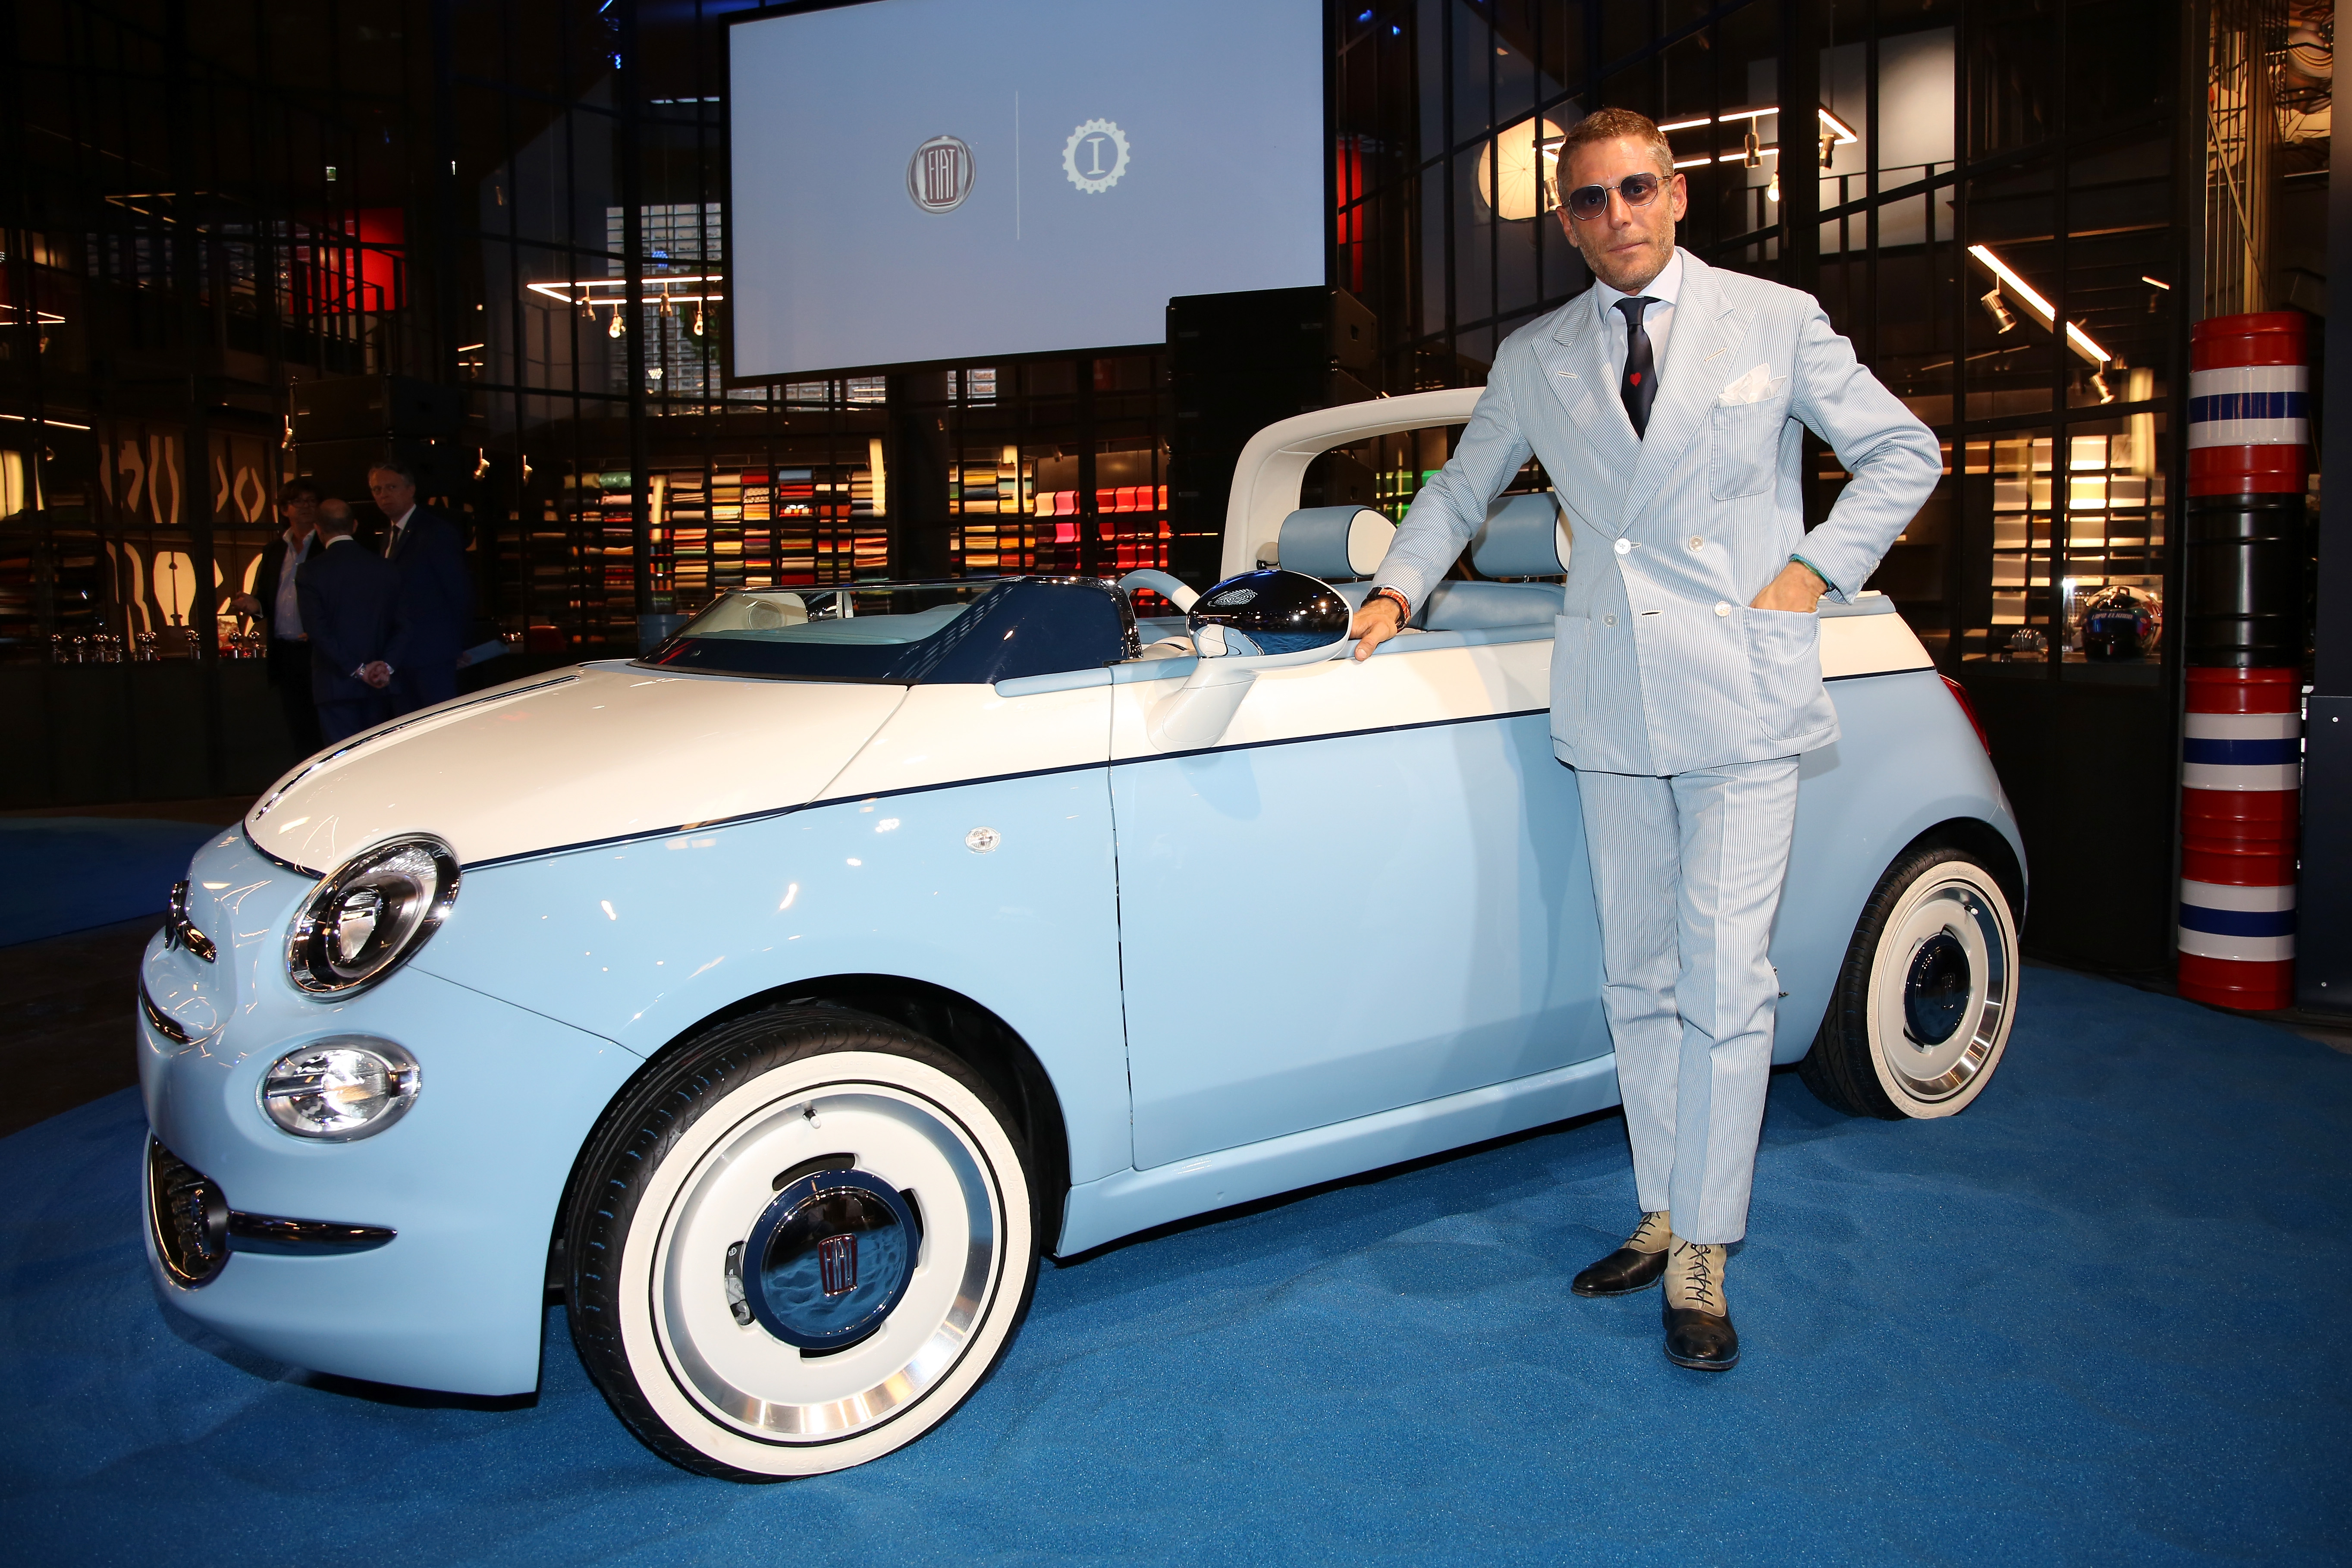 Lapo Elkann posing with the new Spiaggina by Garage Italia MILAN, ITALY - JULY 04: Lapo Elkann attends HAPPY BIRTHDAY FIAT 500 Event in Milan on July 4, 2018 in Milan, Italy. (Photo by Vincenzo Lombardo/Getty Images for Garage Italia ) *** Local Caption *** Lapo Elkann